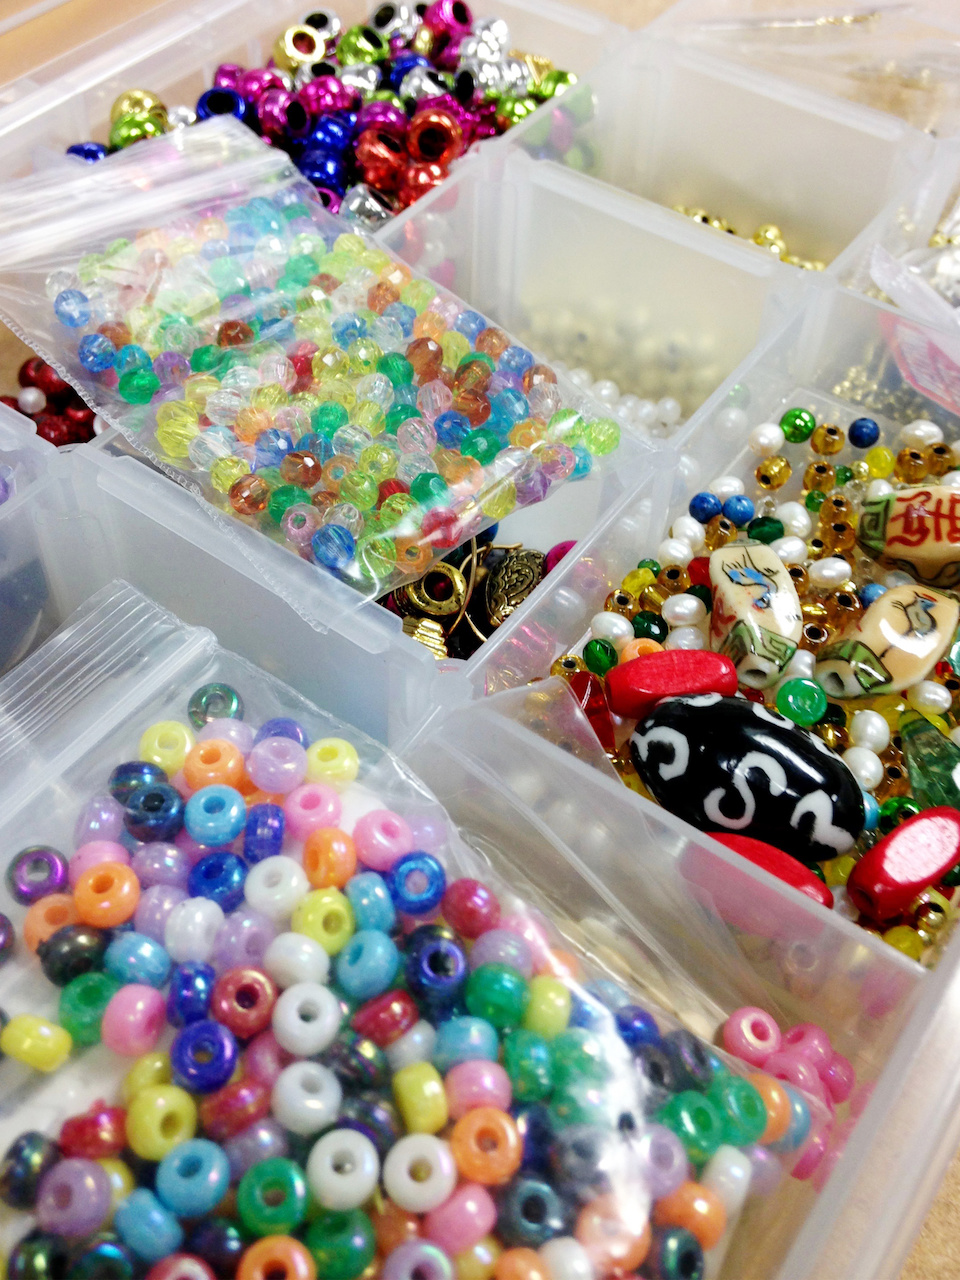 A tray of colorful beads offers more possibilities for personalizing creative needlepoint projects.